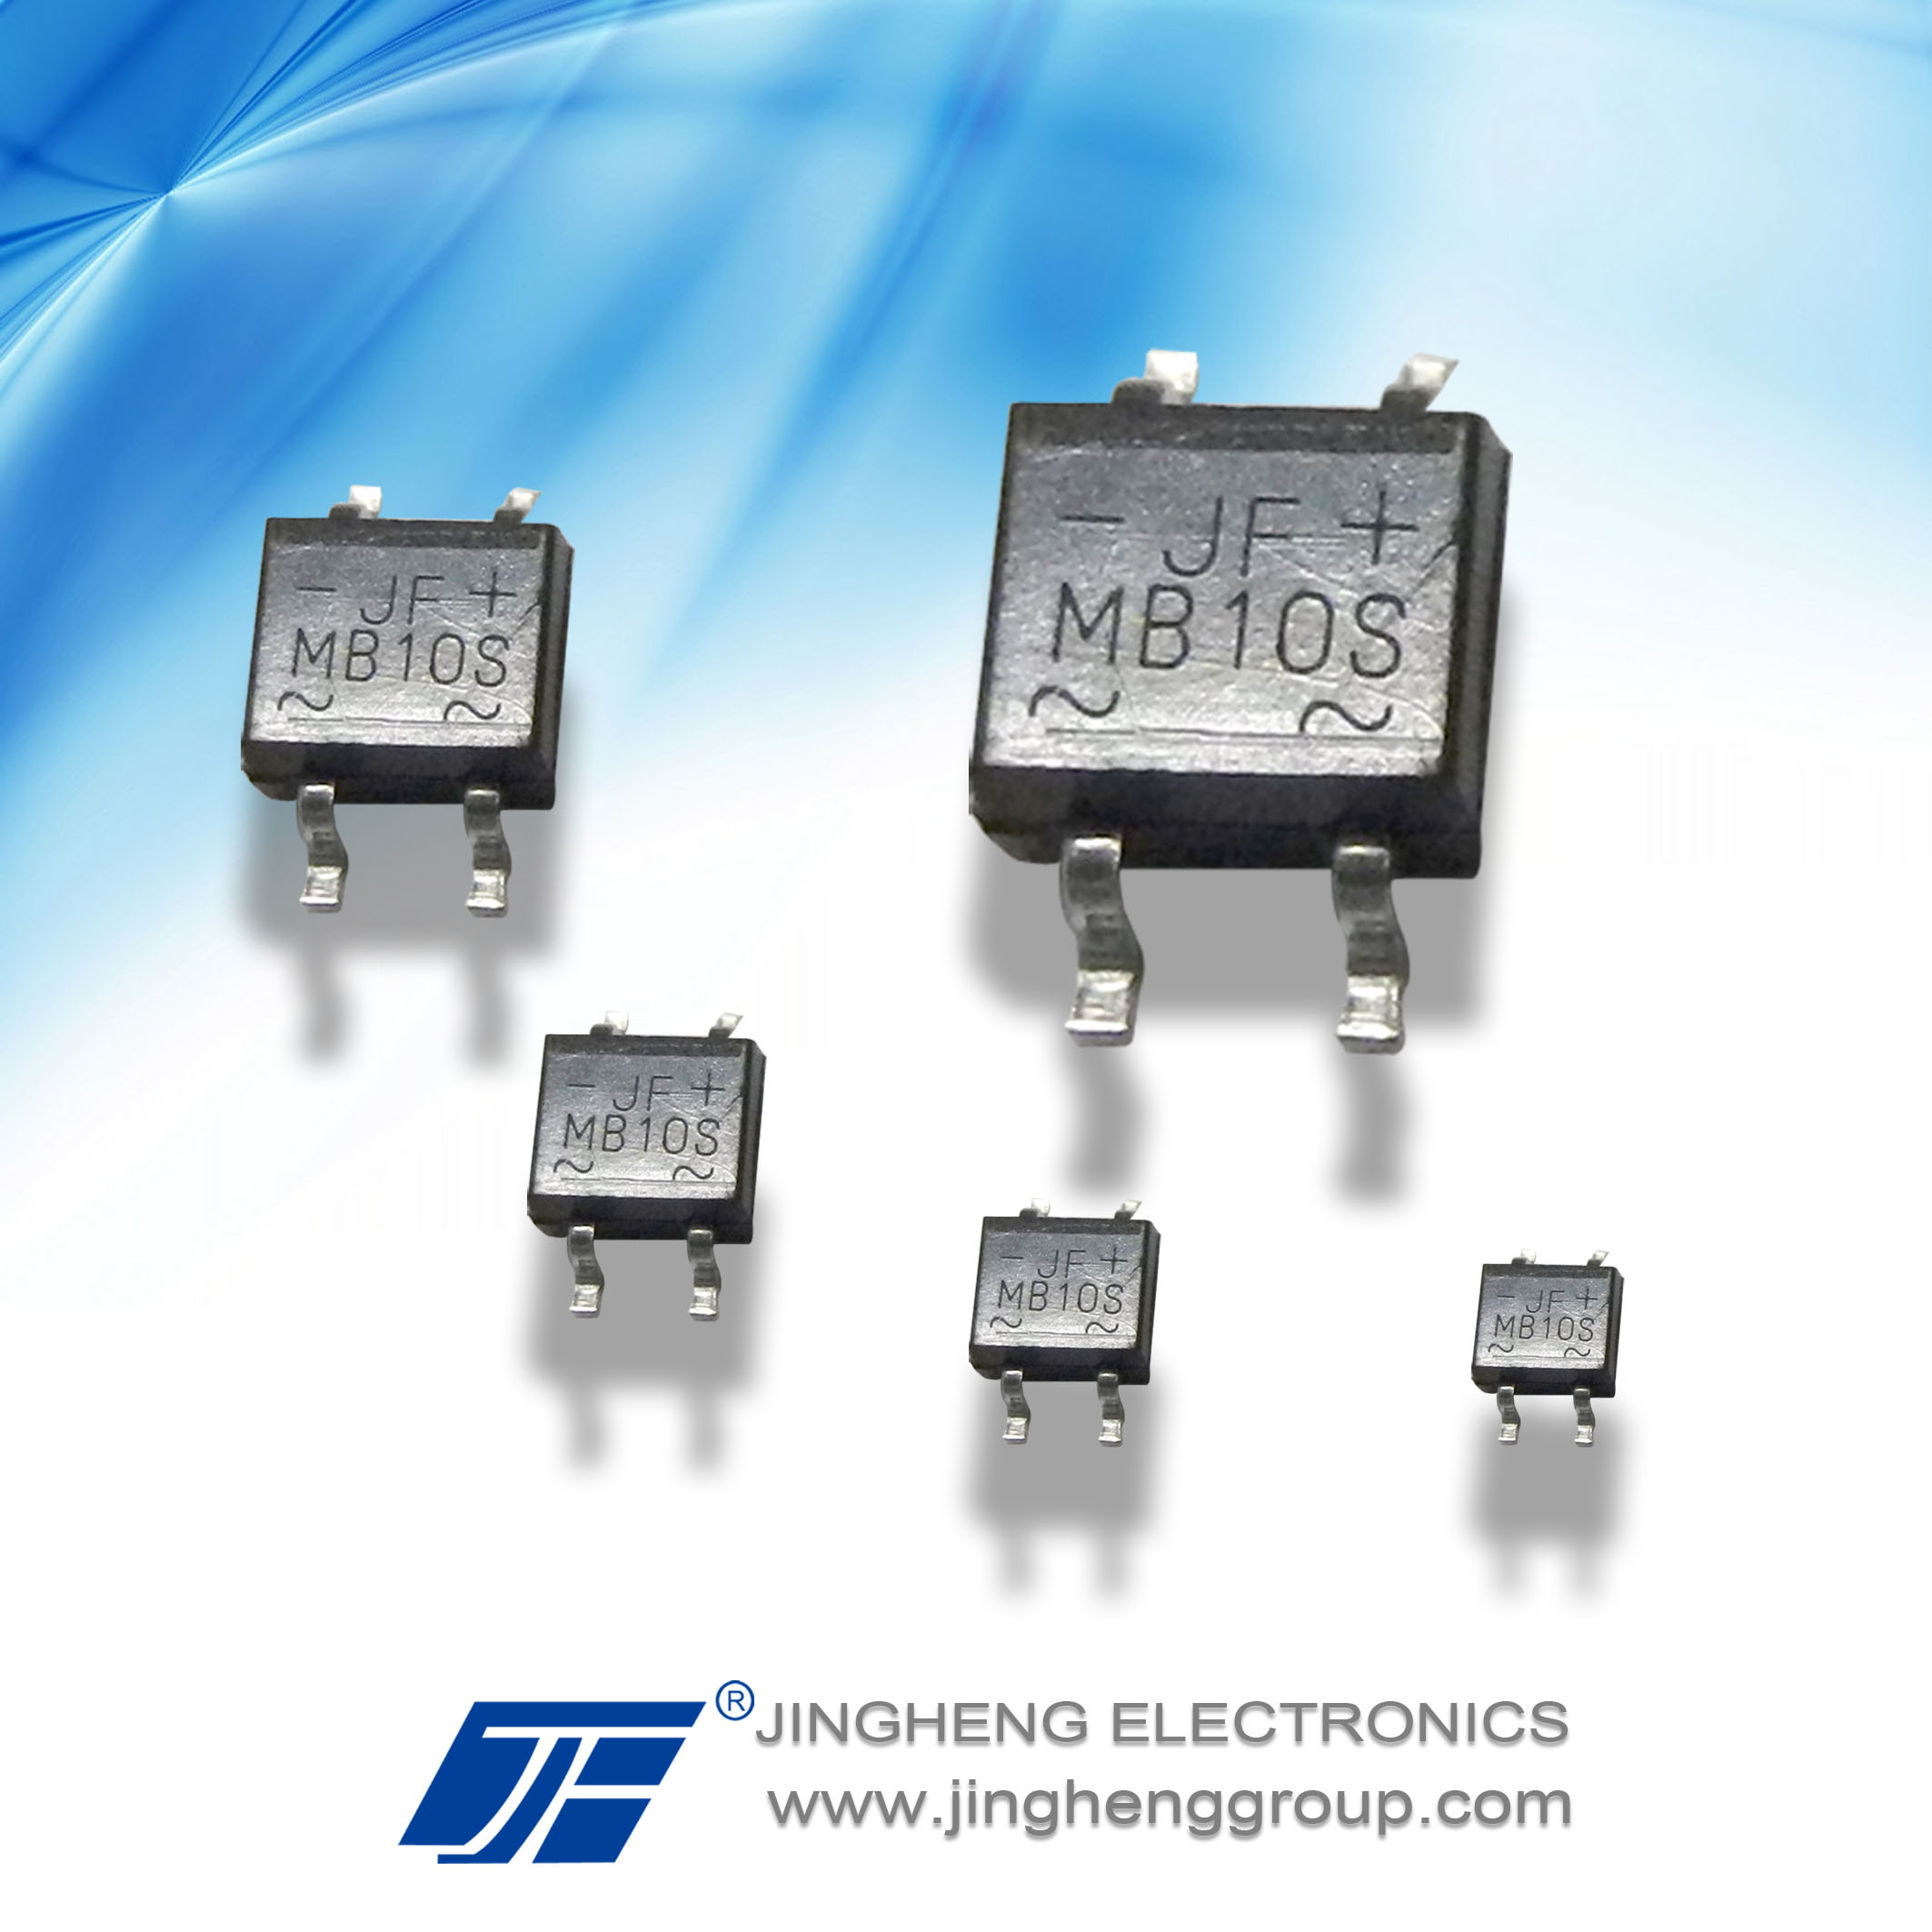 1A/1000V bridge rectifier diode MB10S with MBS package